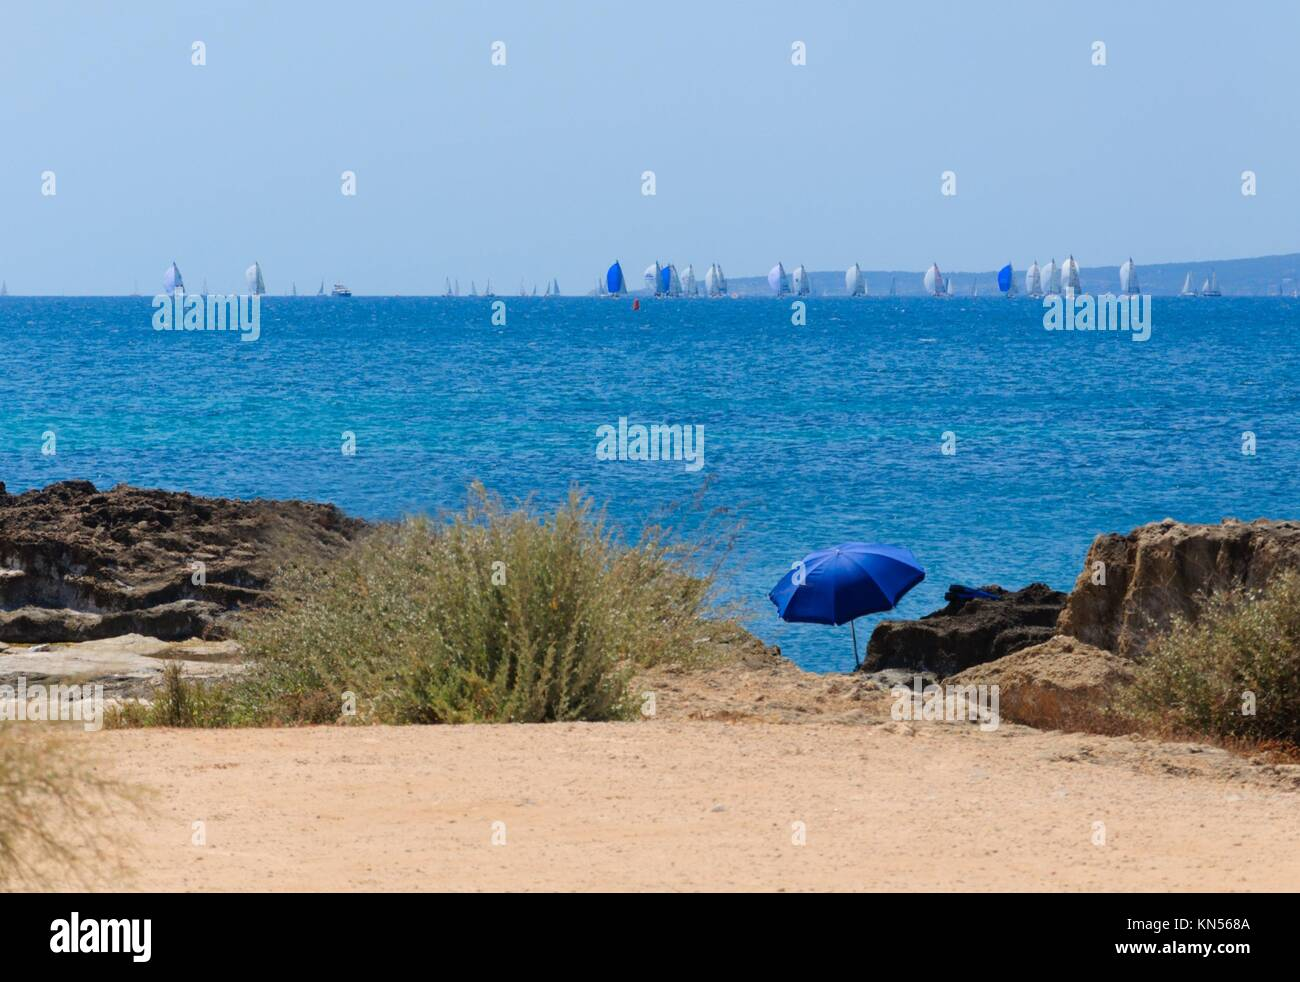 Blue parasol and the Copa del Rey regatta with blue sails in Palma Bay, Majorca, Spain. - Stock Image